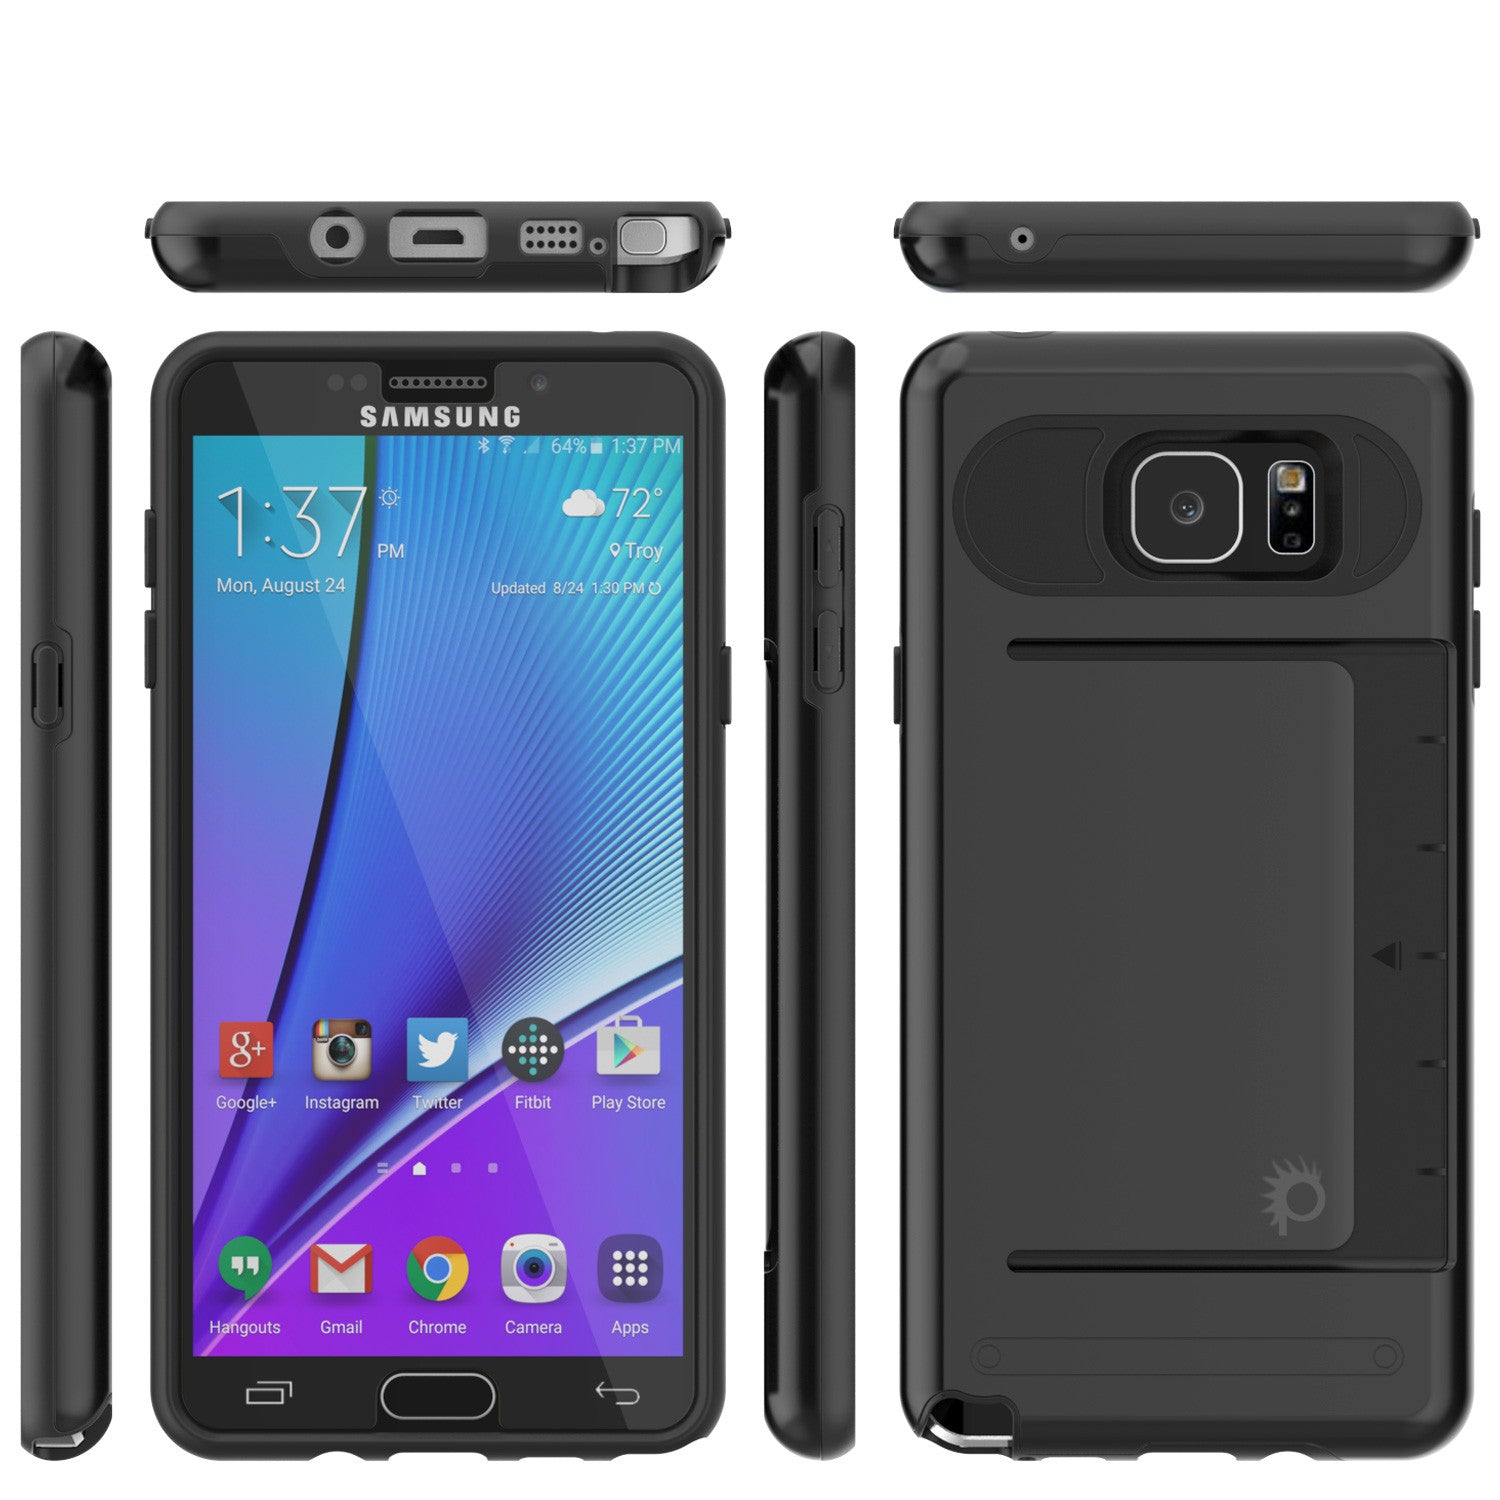 Galaxy Note 5 Case PunkCase CLUTCH Black Series Slim Armor Soft Cover Case w/ Tempered Glass